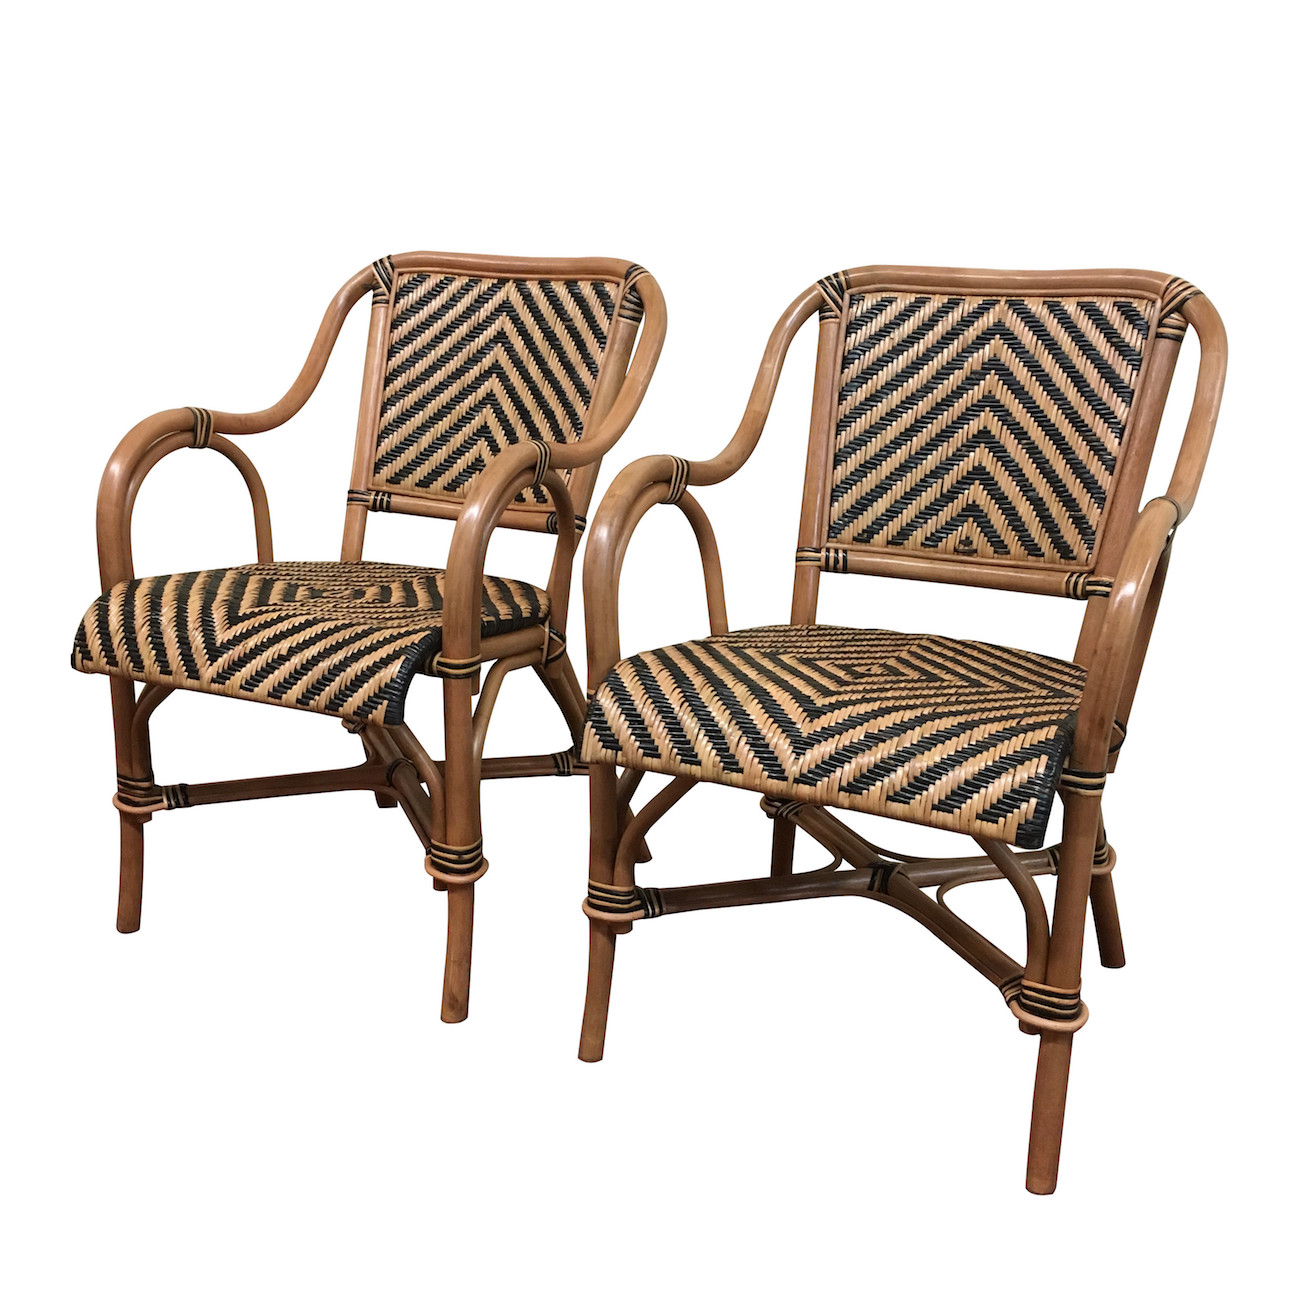 A Pair Of Safari Rattan Dining Arm Chairs Wicker Paradise